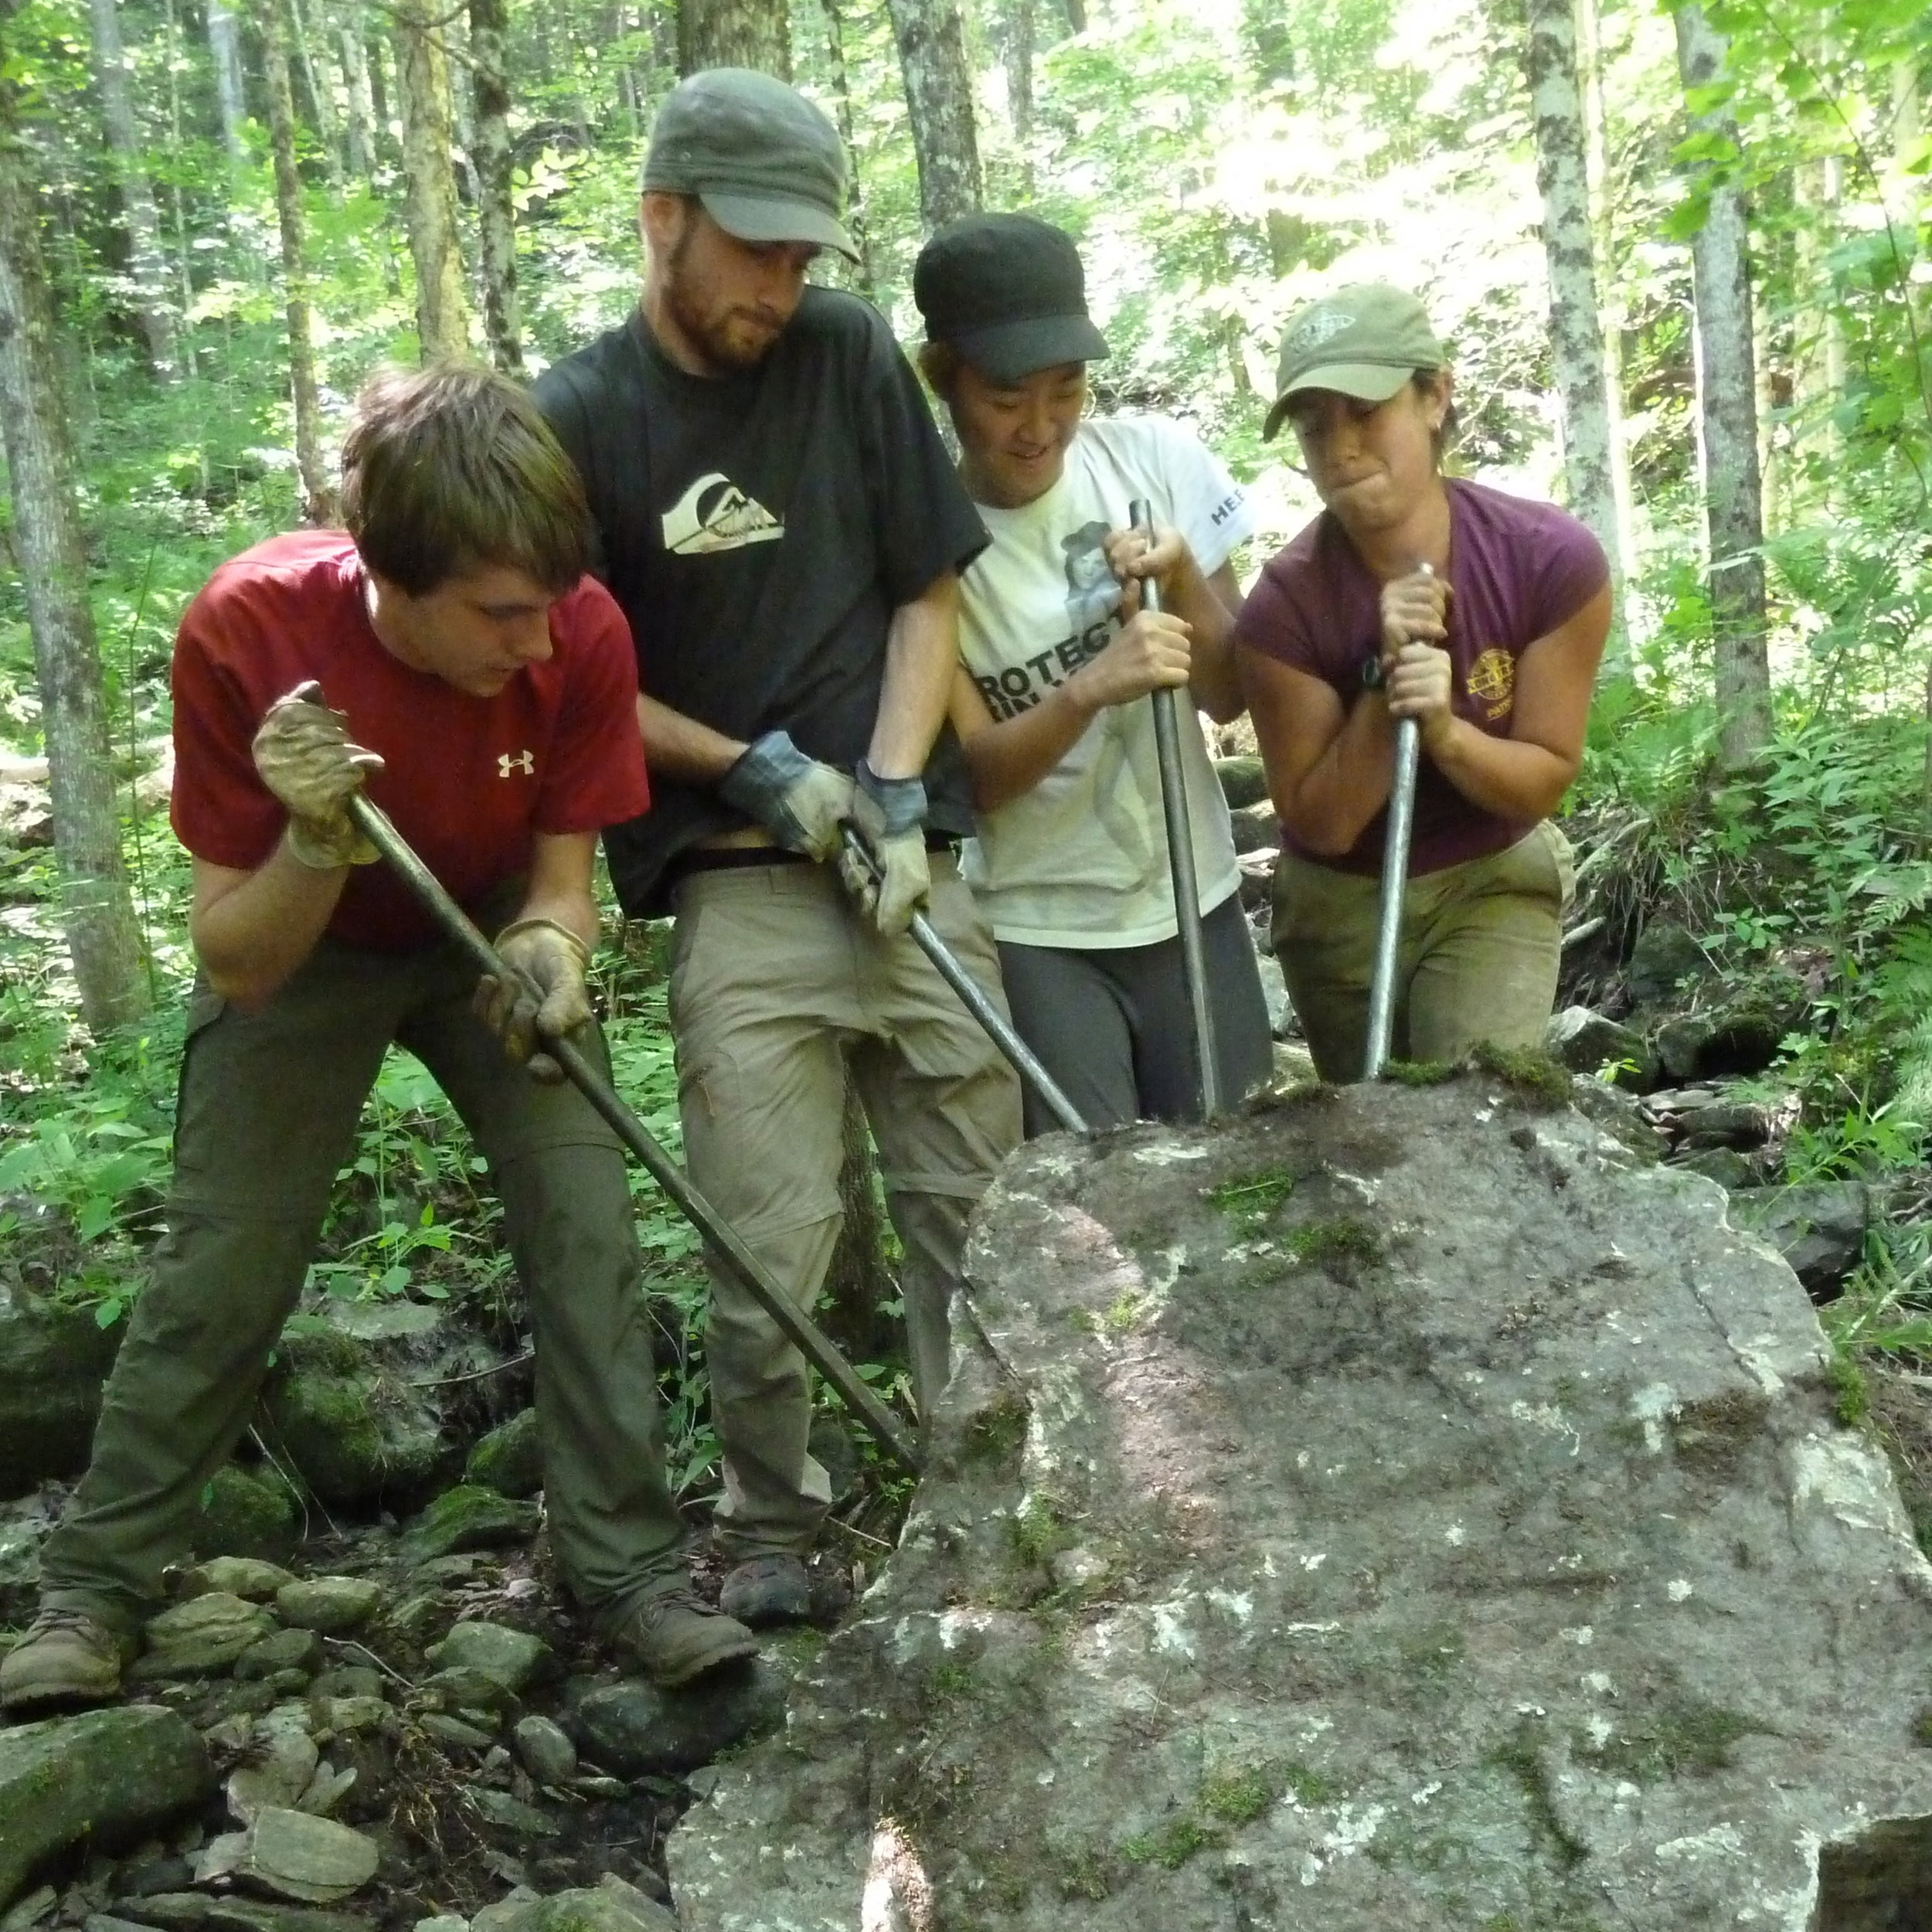 Rock quarrying for stepping stones with international volunteers in Vermont.